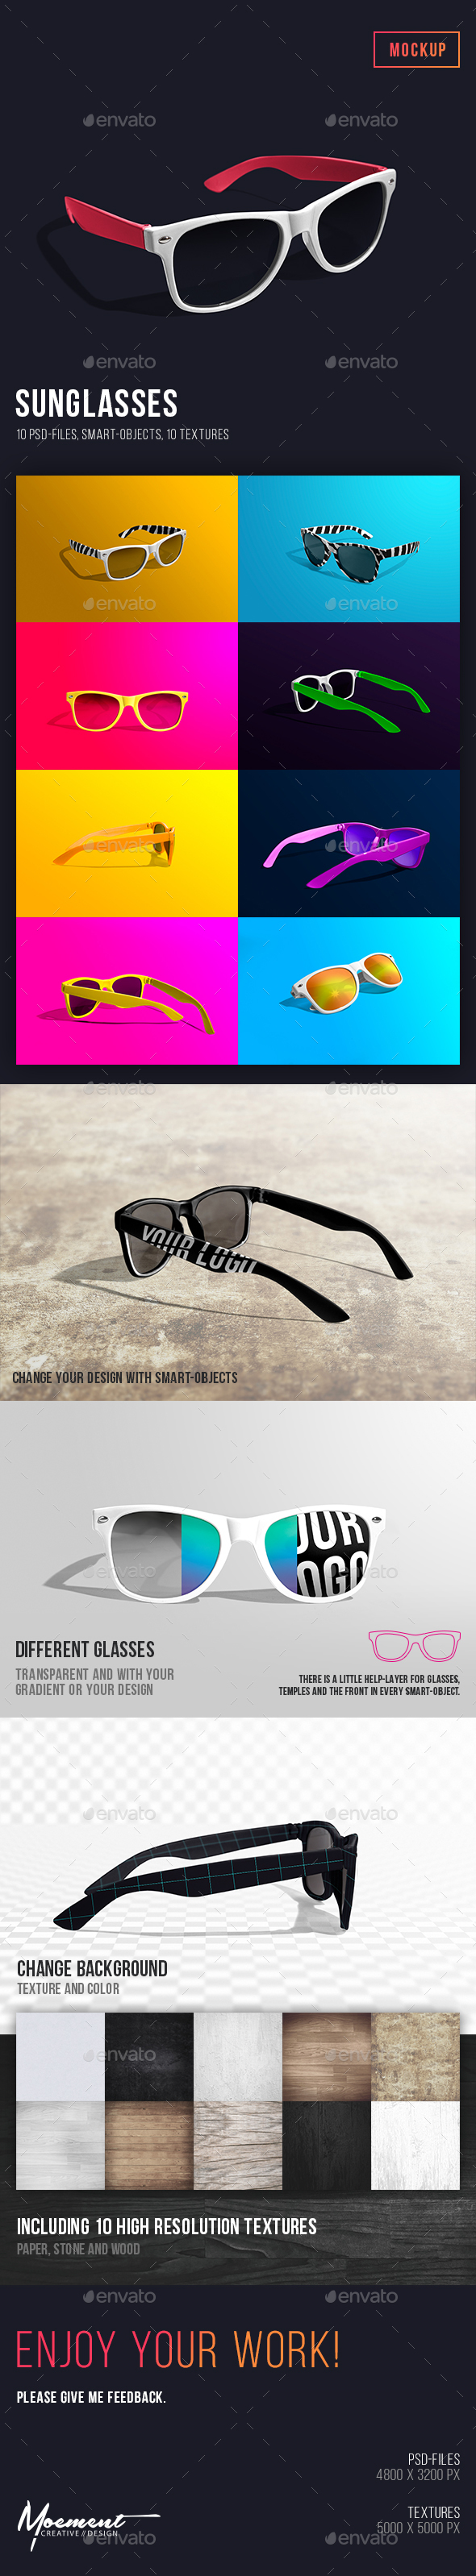 GraphicRiver Sunglasses Mockup 20251238